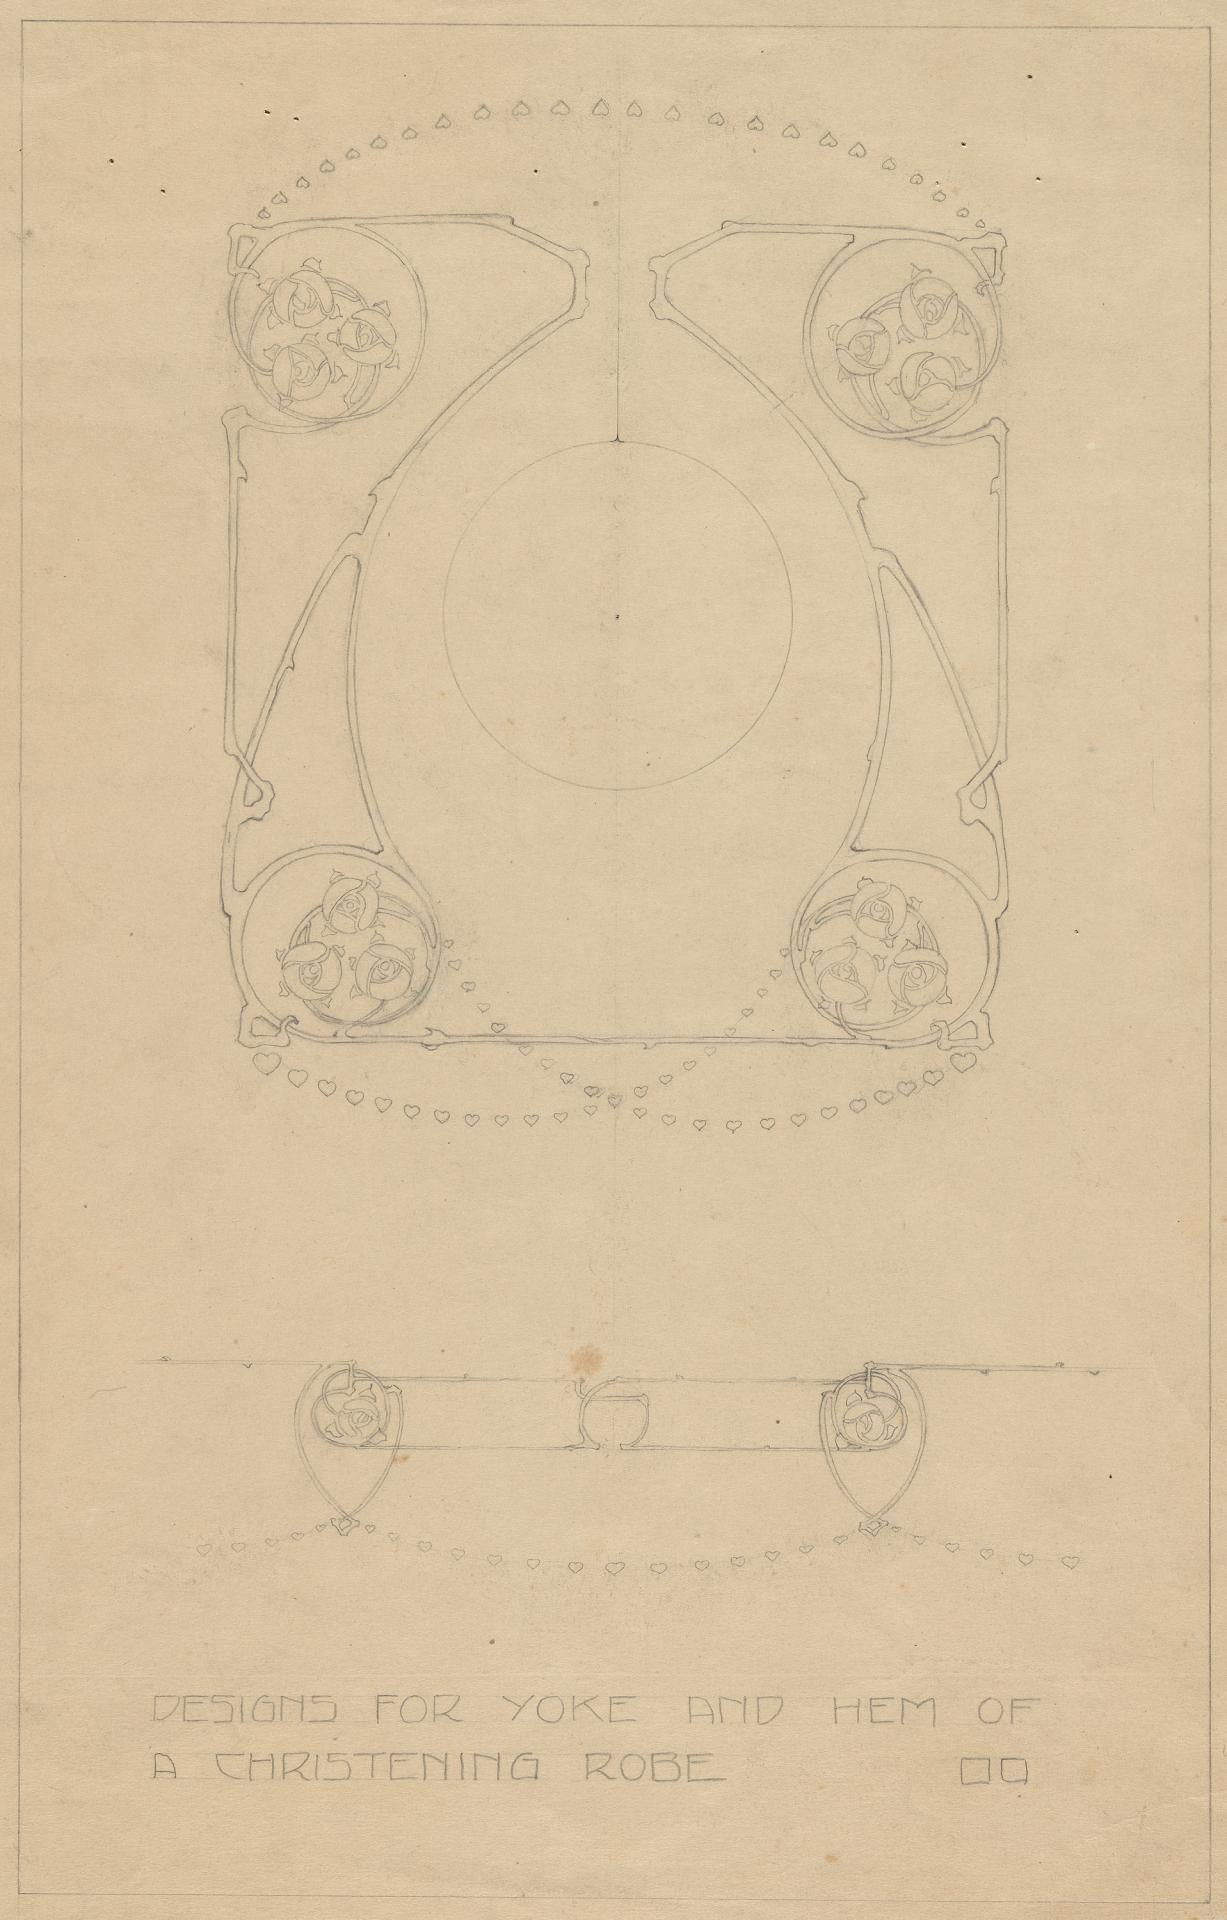 Design for a yoke and hem of a christening robe